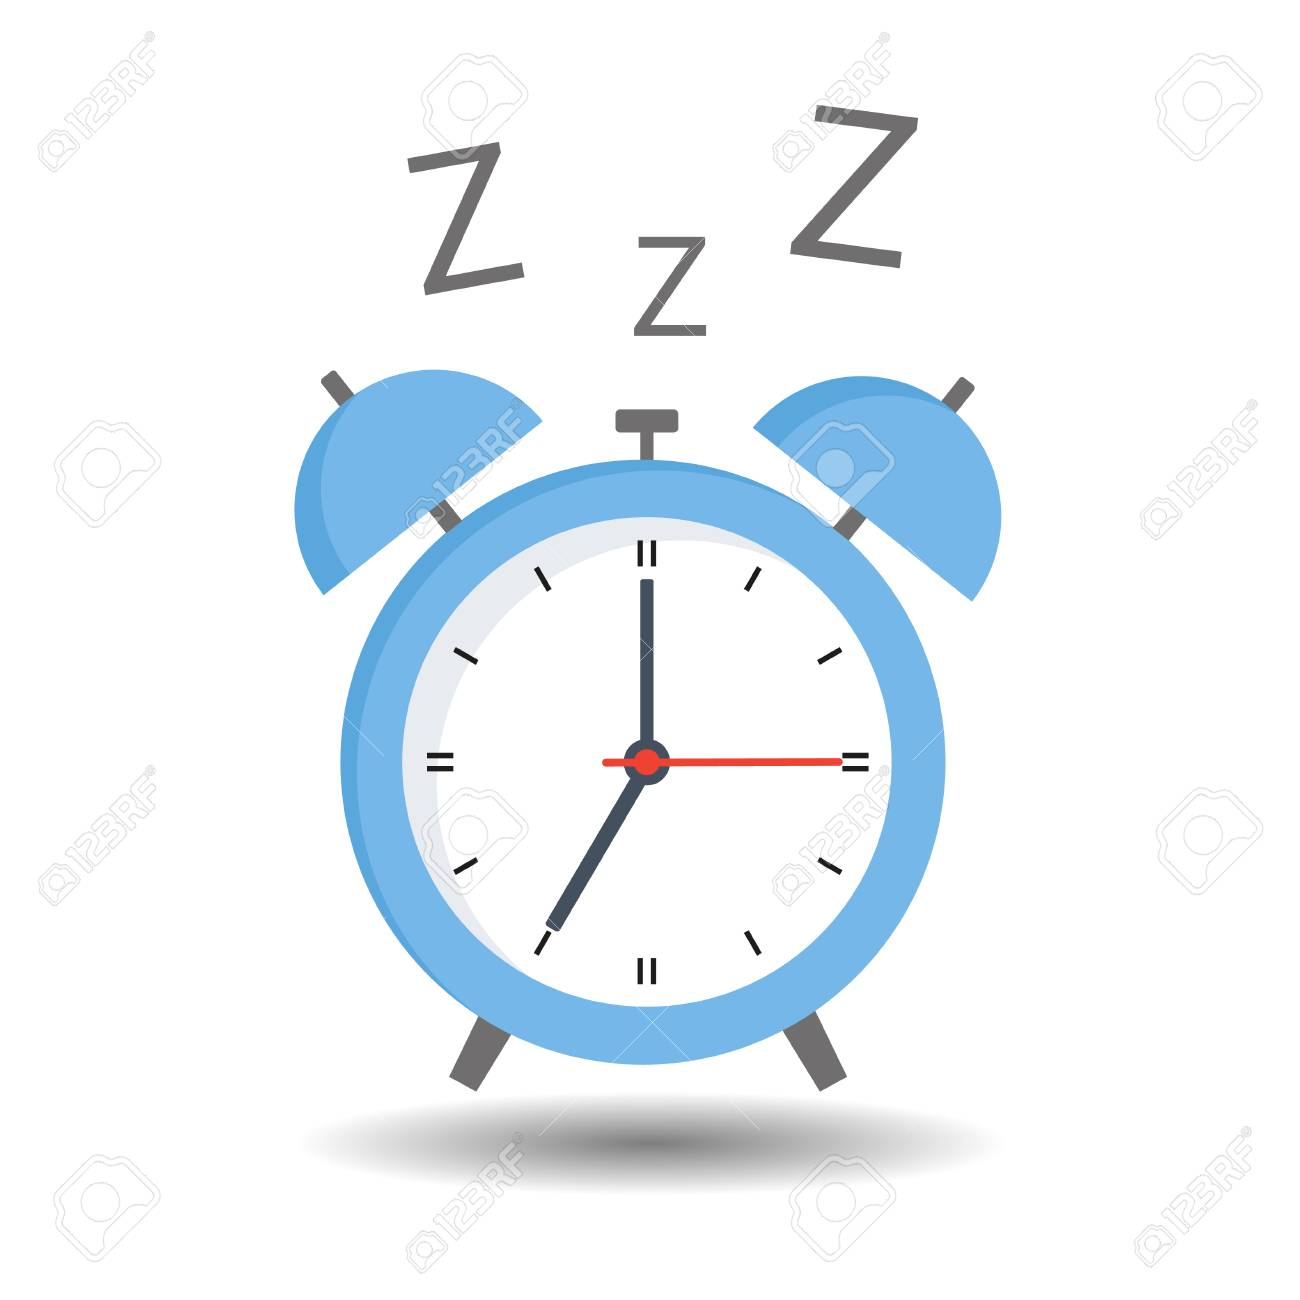 Blue Alarm Clock On White Background With Shadow Royalty Free Cliparts Vectors And Stock Illustration Image 101051305